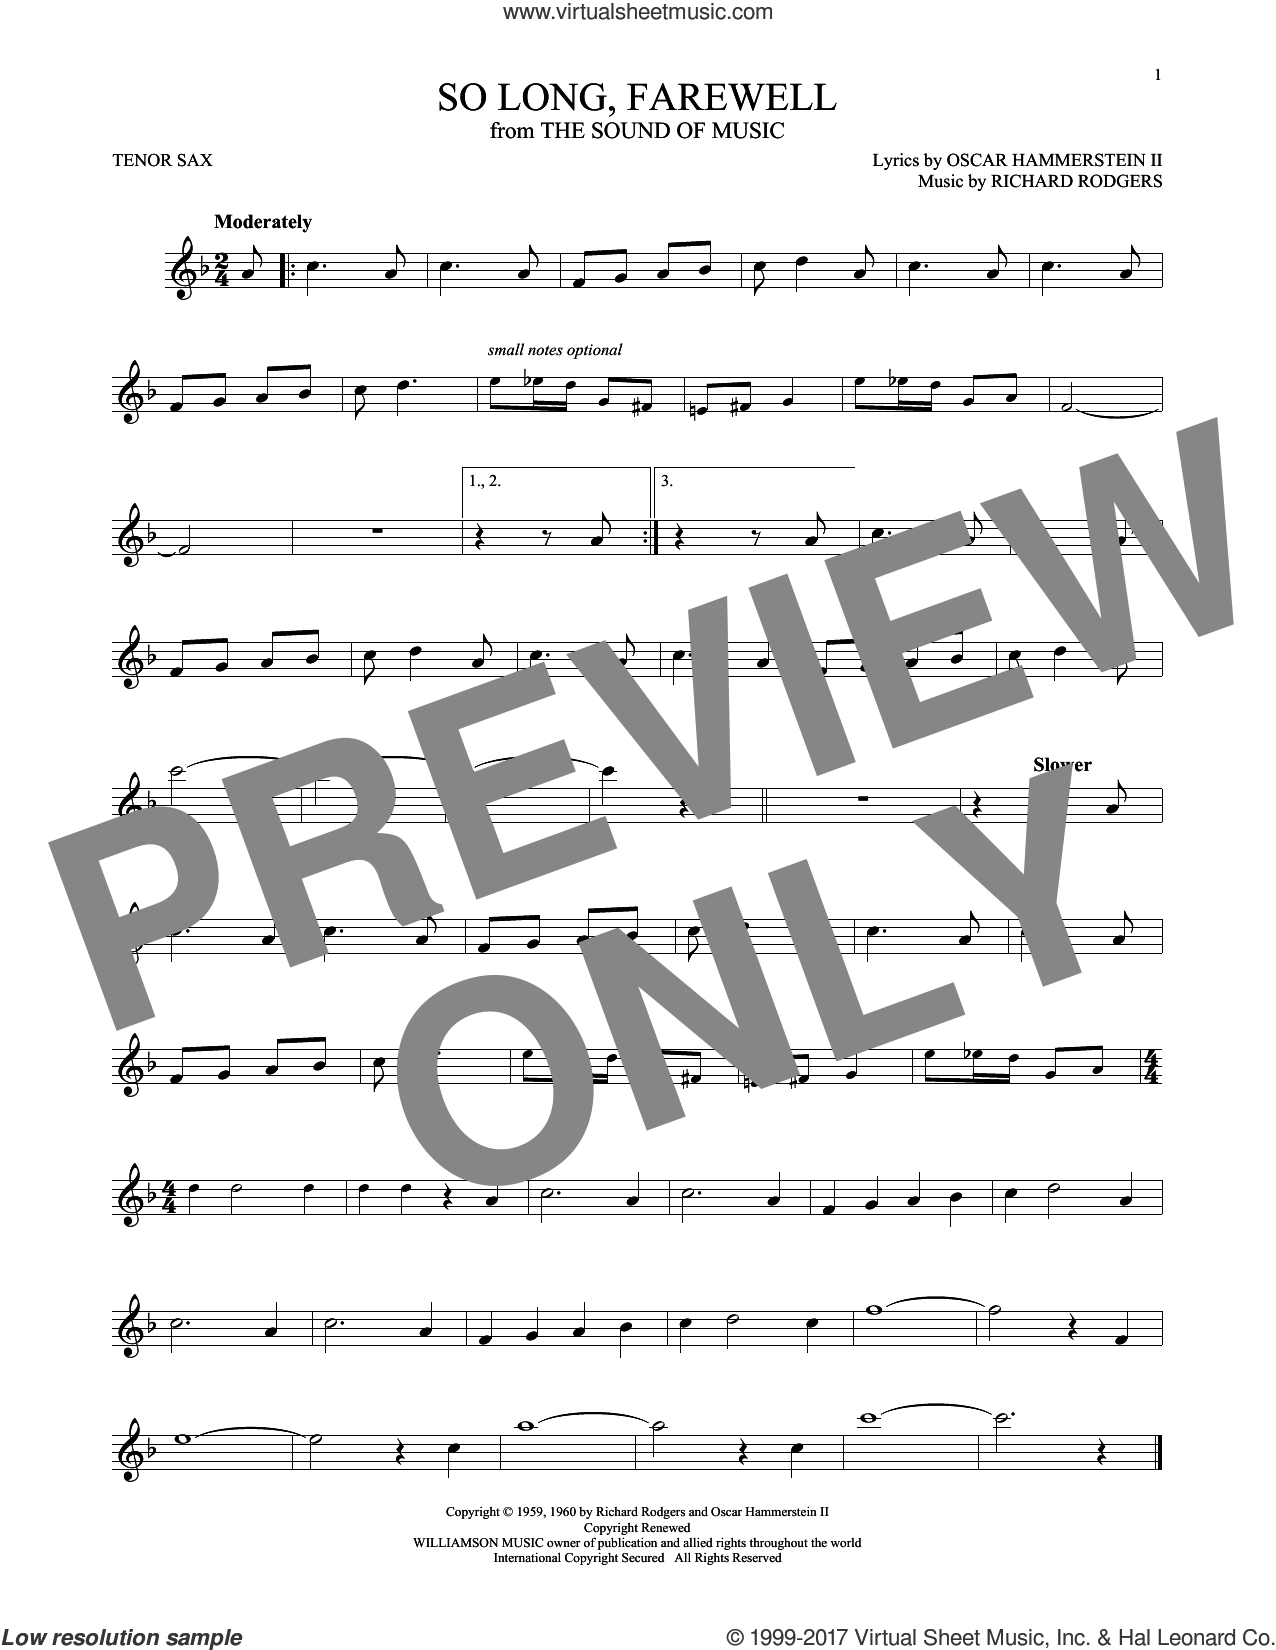 So Long, Farewell sheet music for tenor saxophone solo by Rodgers & Hammerstein, Oscar II Hammerstein and Richard Rodgers, intermediate